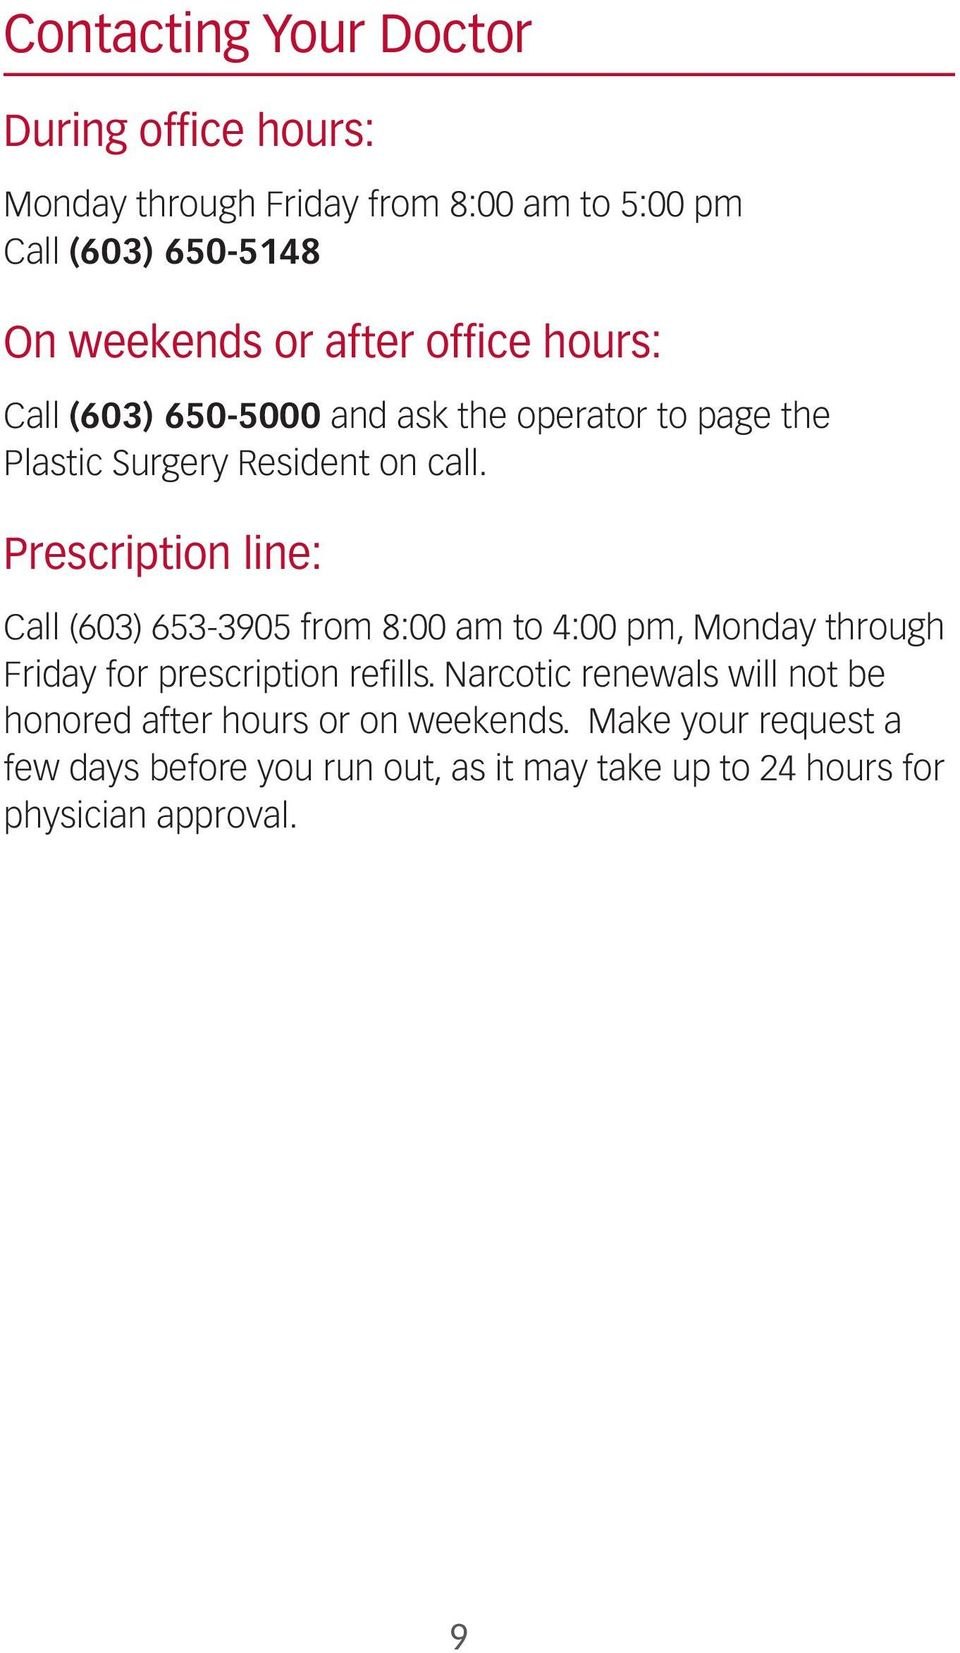 Prescription line: Call (603) 653-3905 from 8:00 am to 4:00 pm, Monday through Friday for prescription refills.